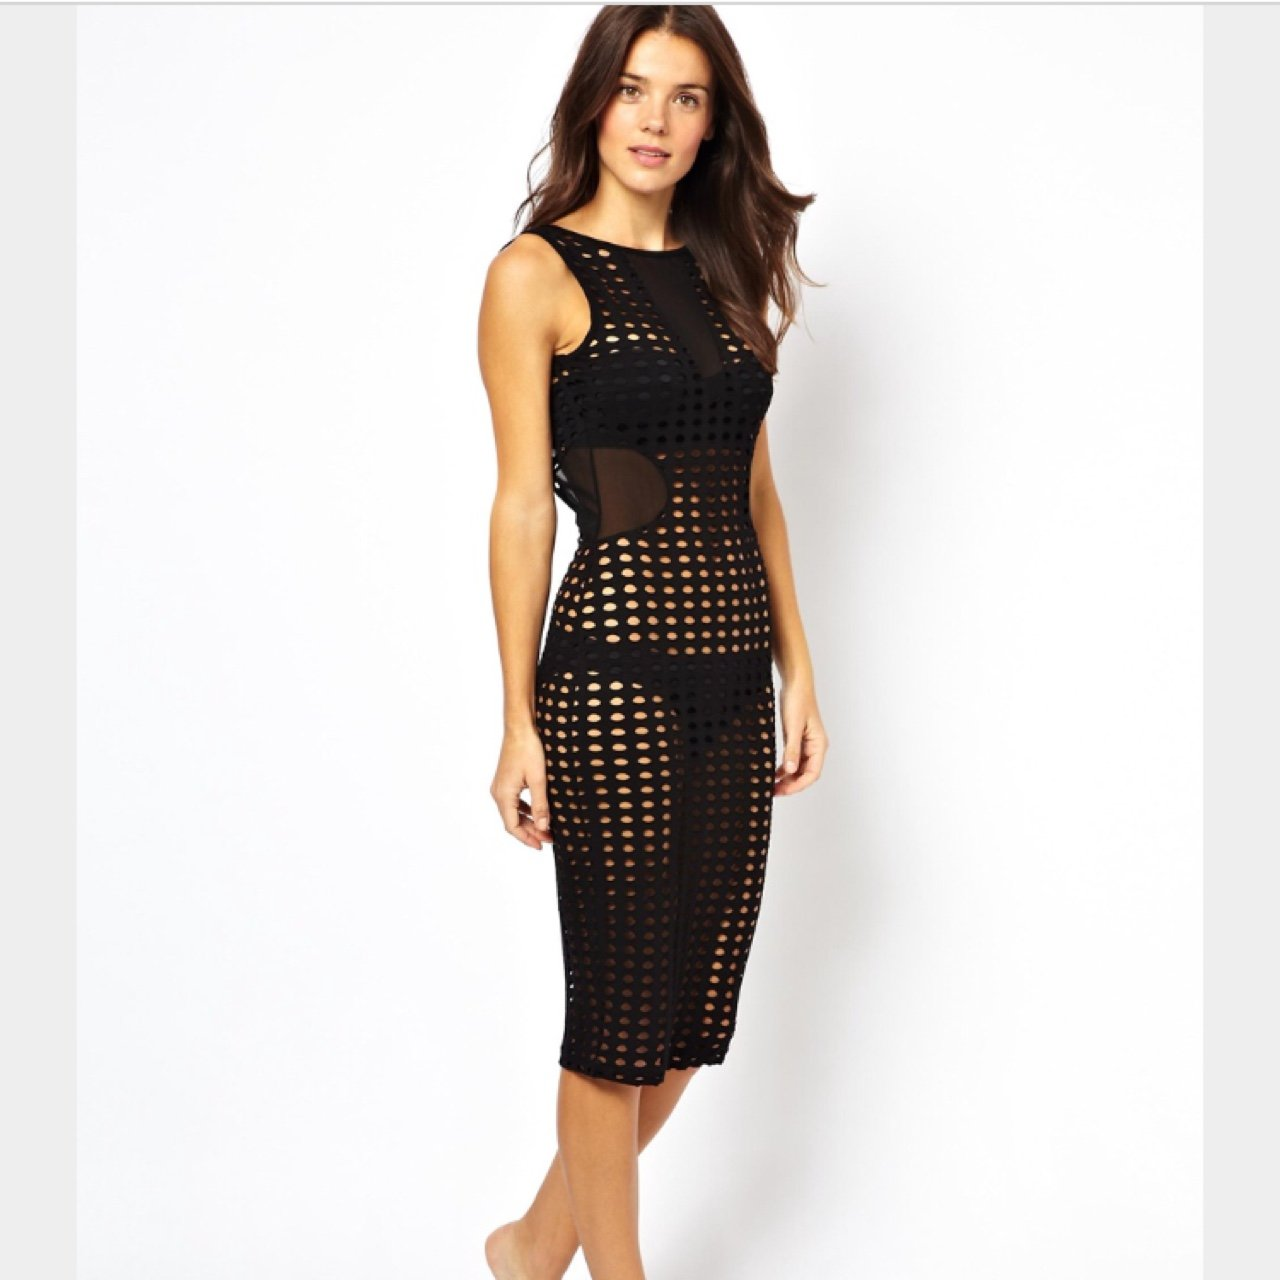 c00228f313336 @camillon04. 10 months ago. Lake Mary, FL, USA. ASOS black netted beach  bathing suit cover up.